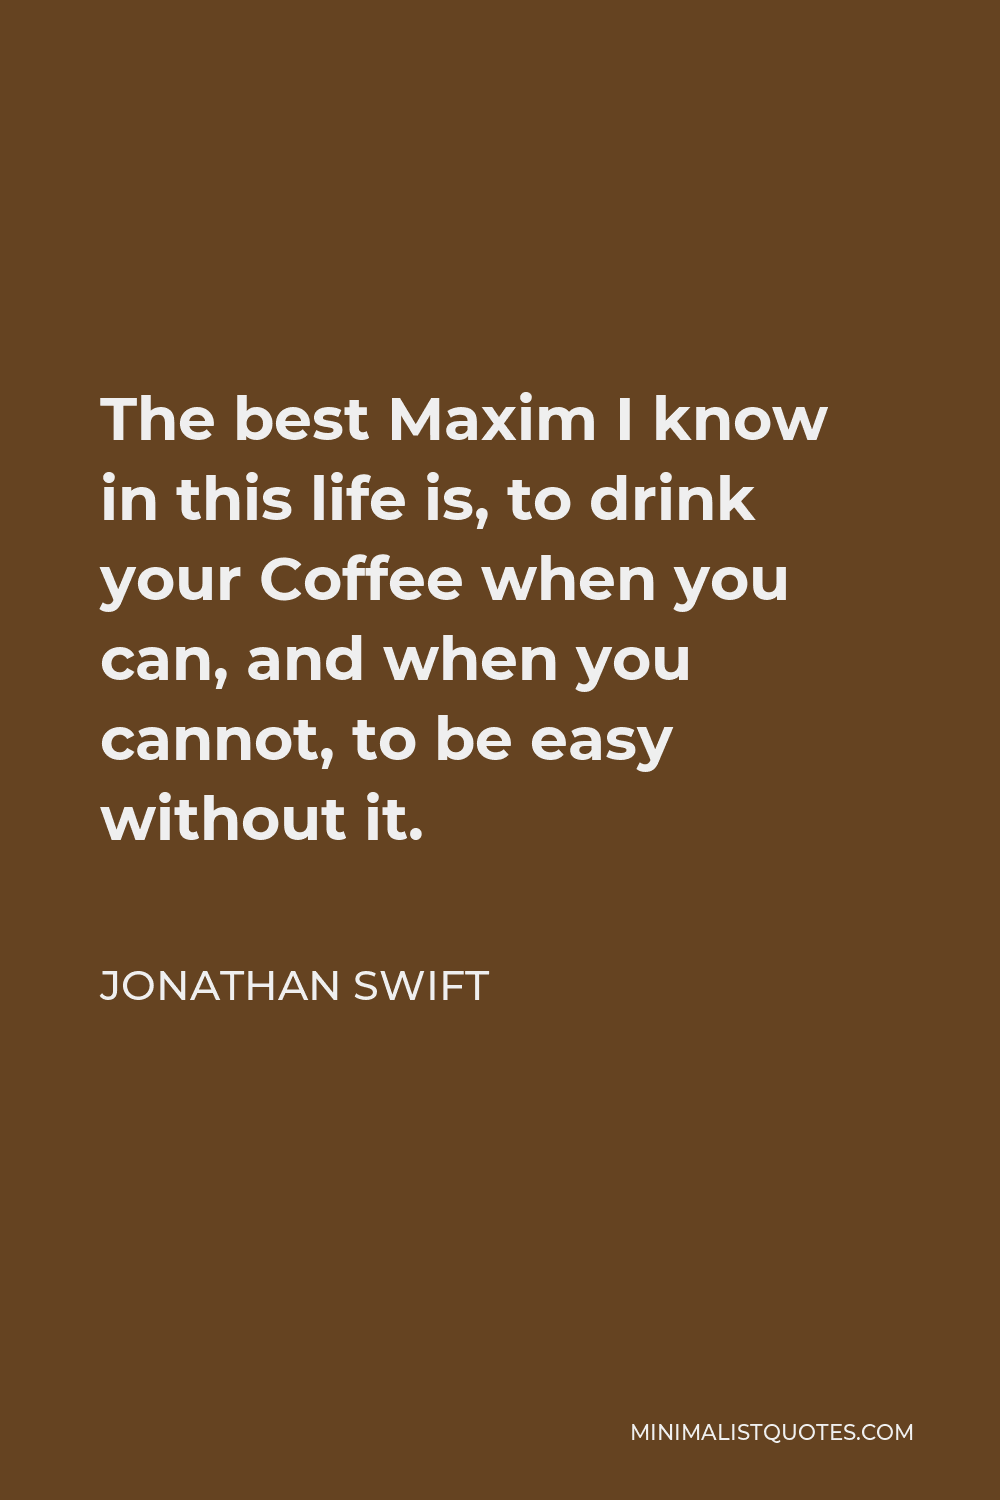 Jonathan Swift Quote - The best Maxim I know in this life is, to drink your Coffee when you can, and when you cannot, to be easy without it.